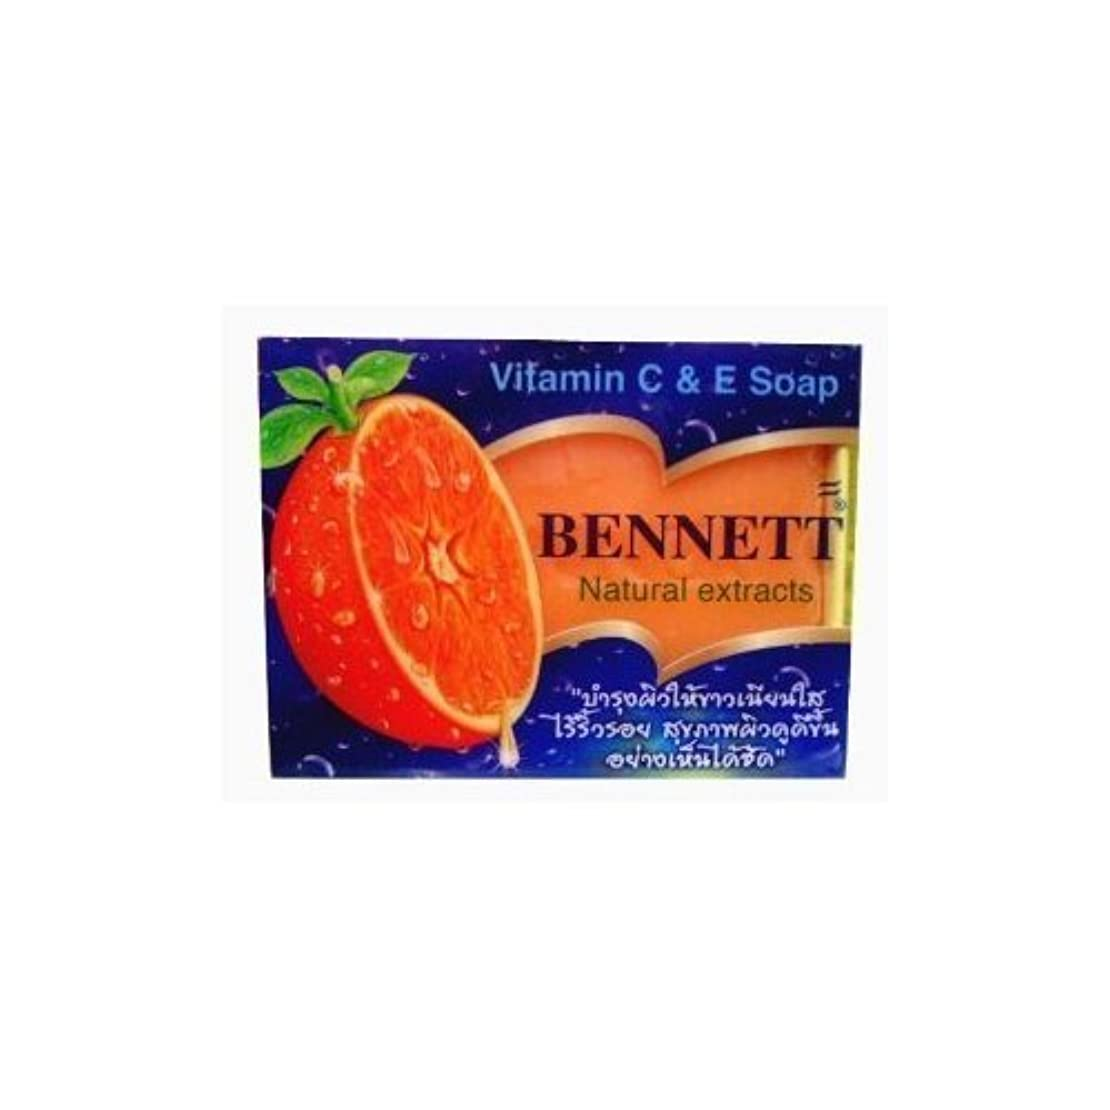 High Vitamin Fruit Extract Body and Face Bar Spa Soap 4.59 0z, Enriched Vitamin C & E Skin Smooth & Anti Acne...